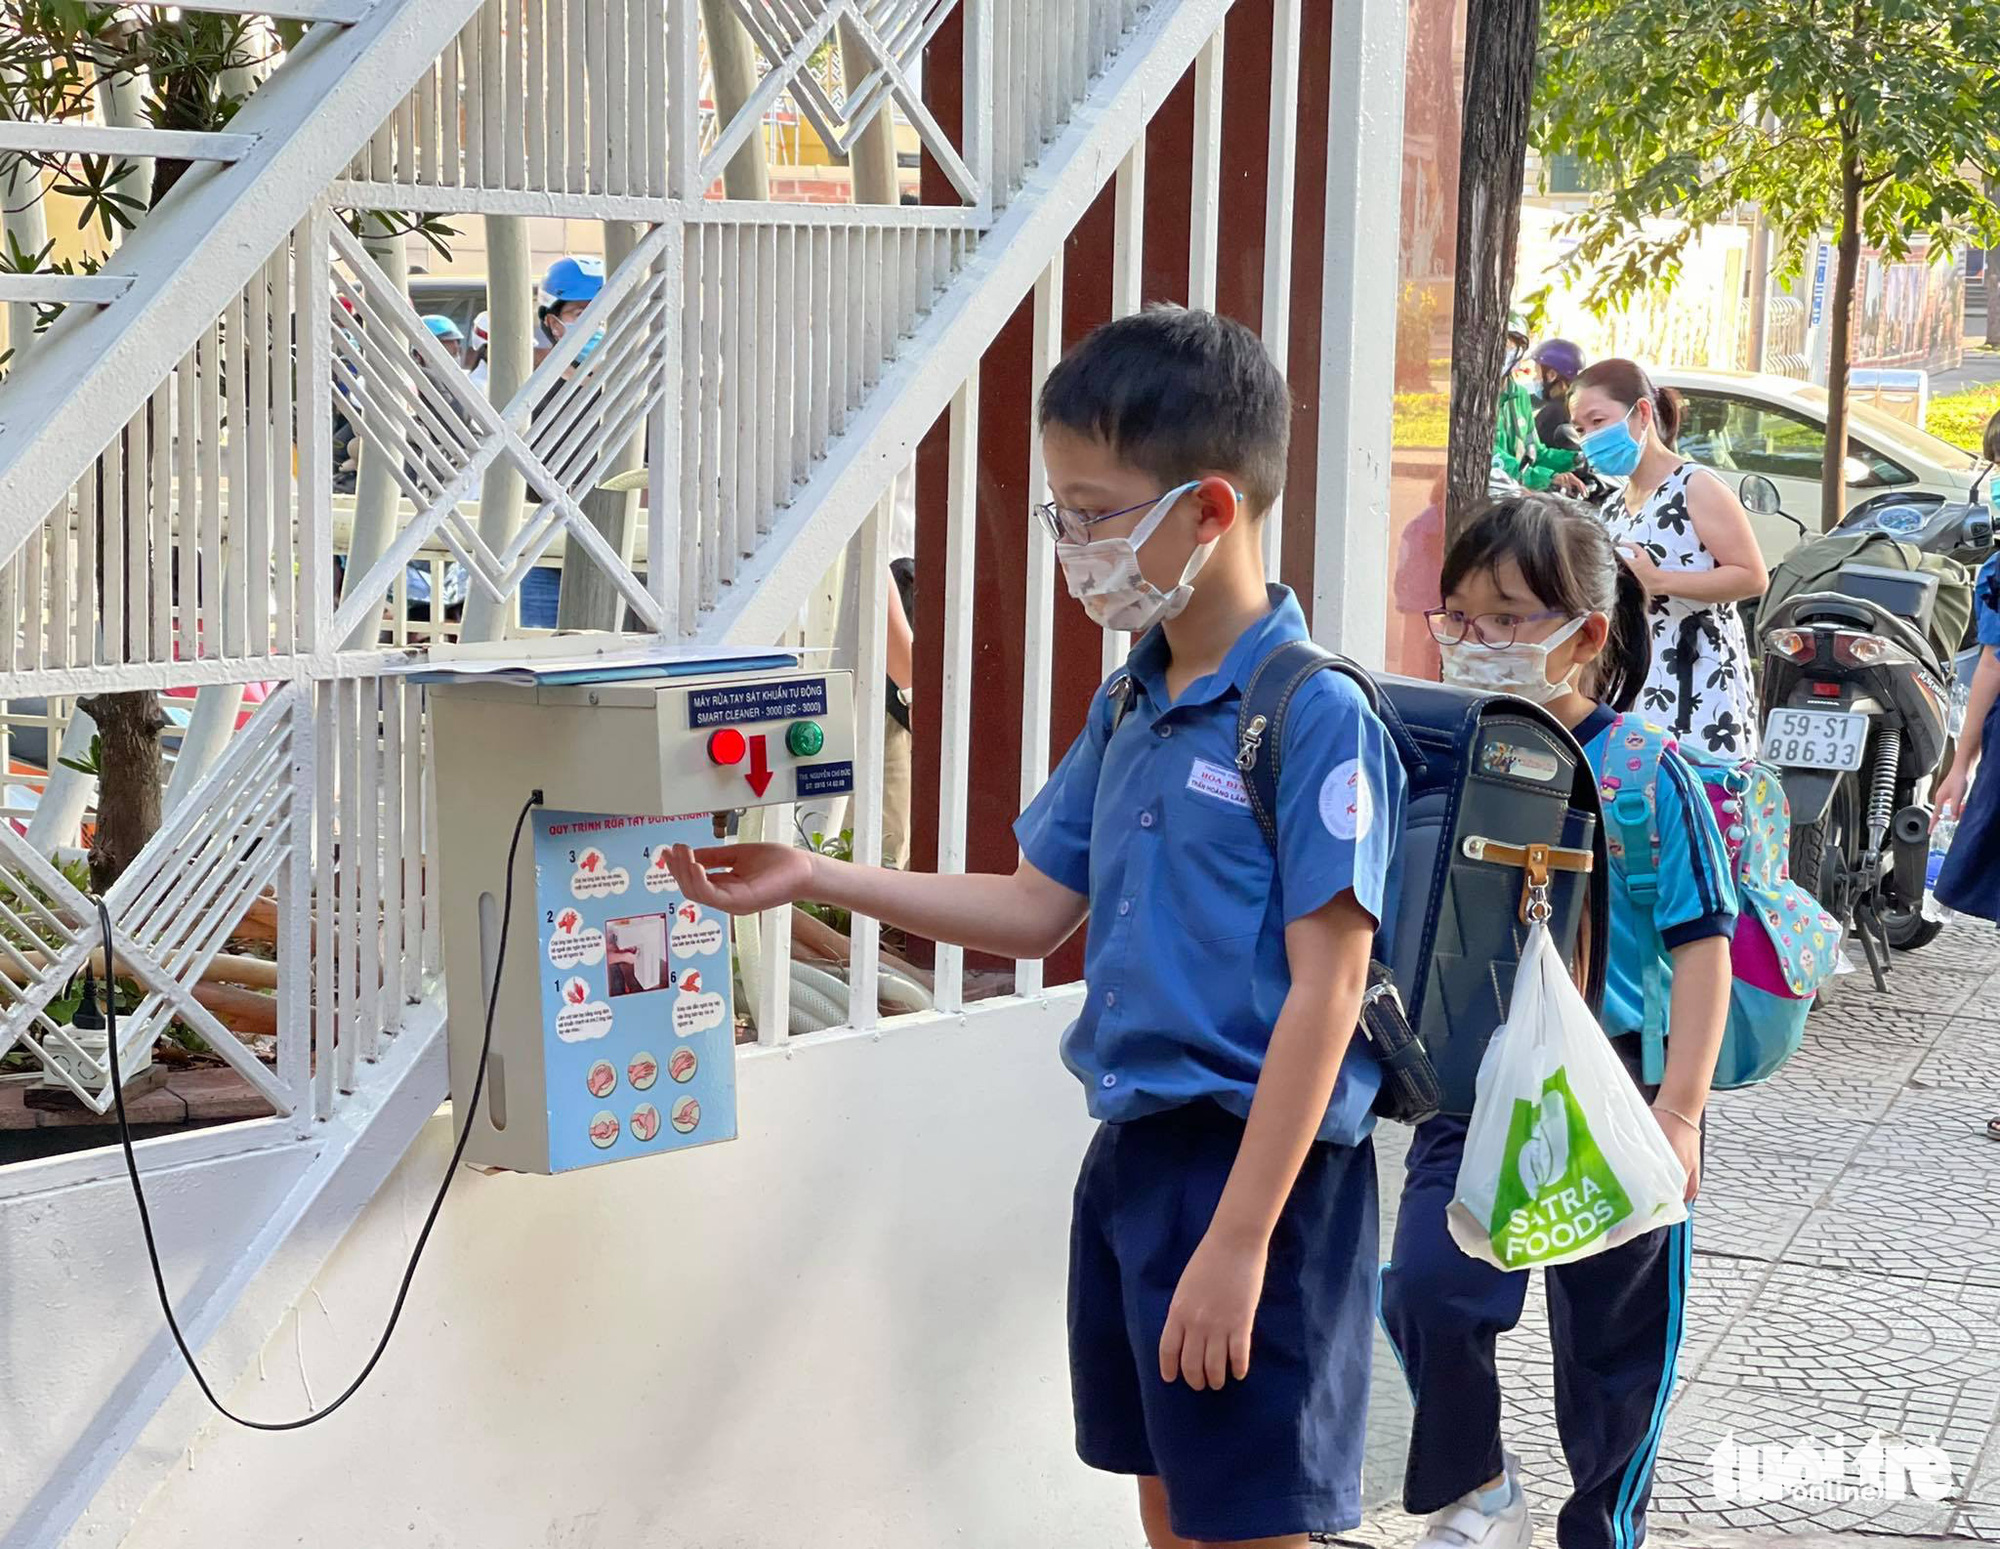 An automatic hand sanitizer is installed at Hoa Binh Elementary School in District 1, Ho Chi Minh City, March 1, 2021. Photo: Thao Thuong / Tuoi Tre